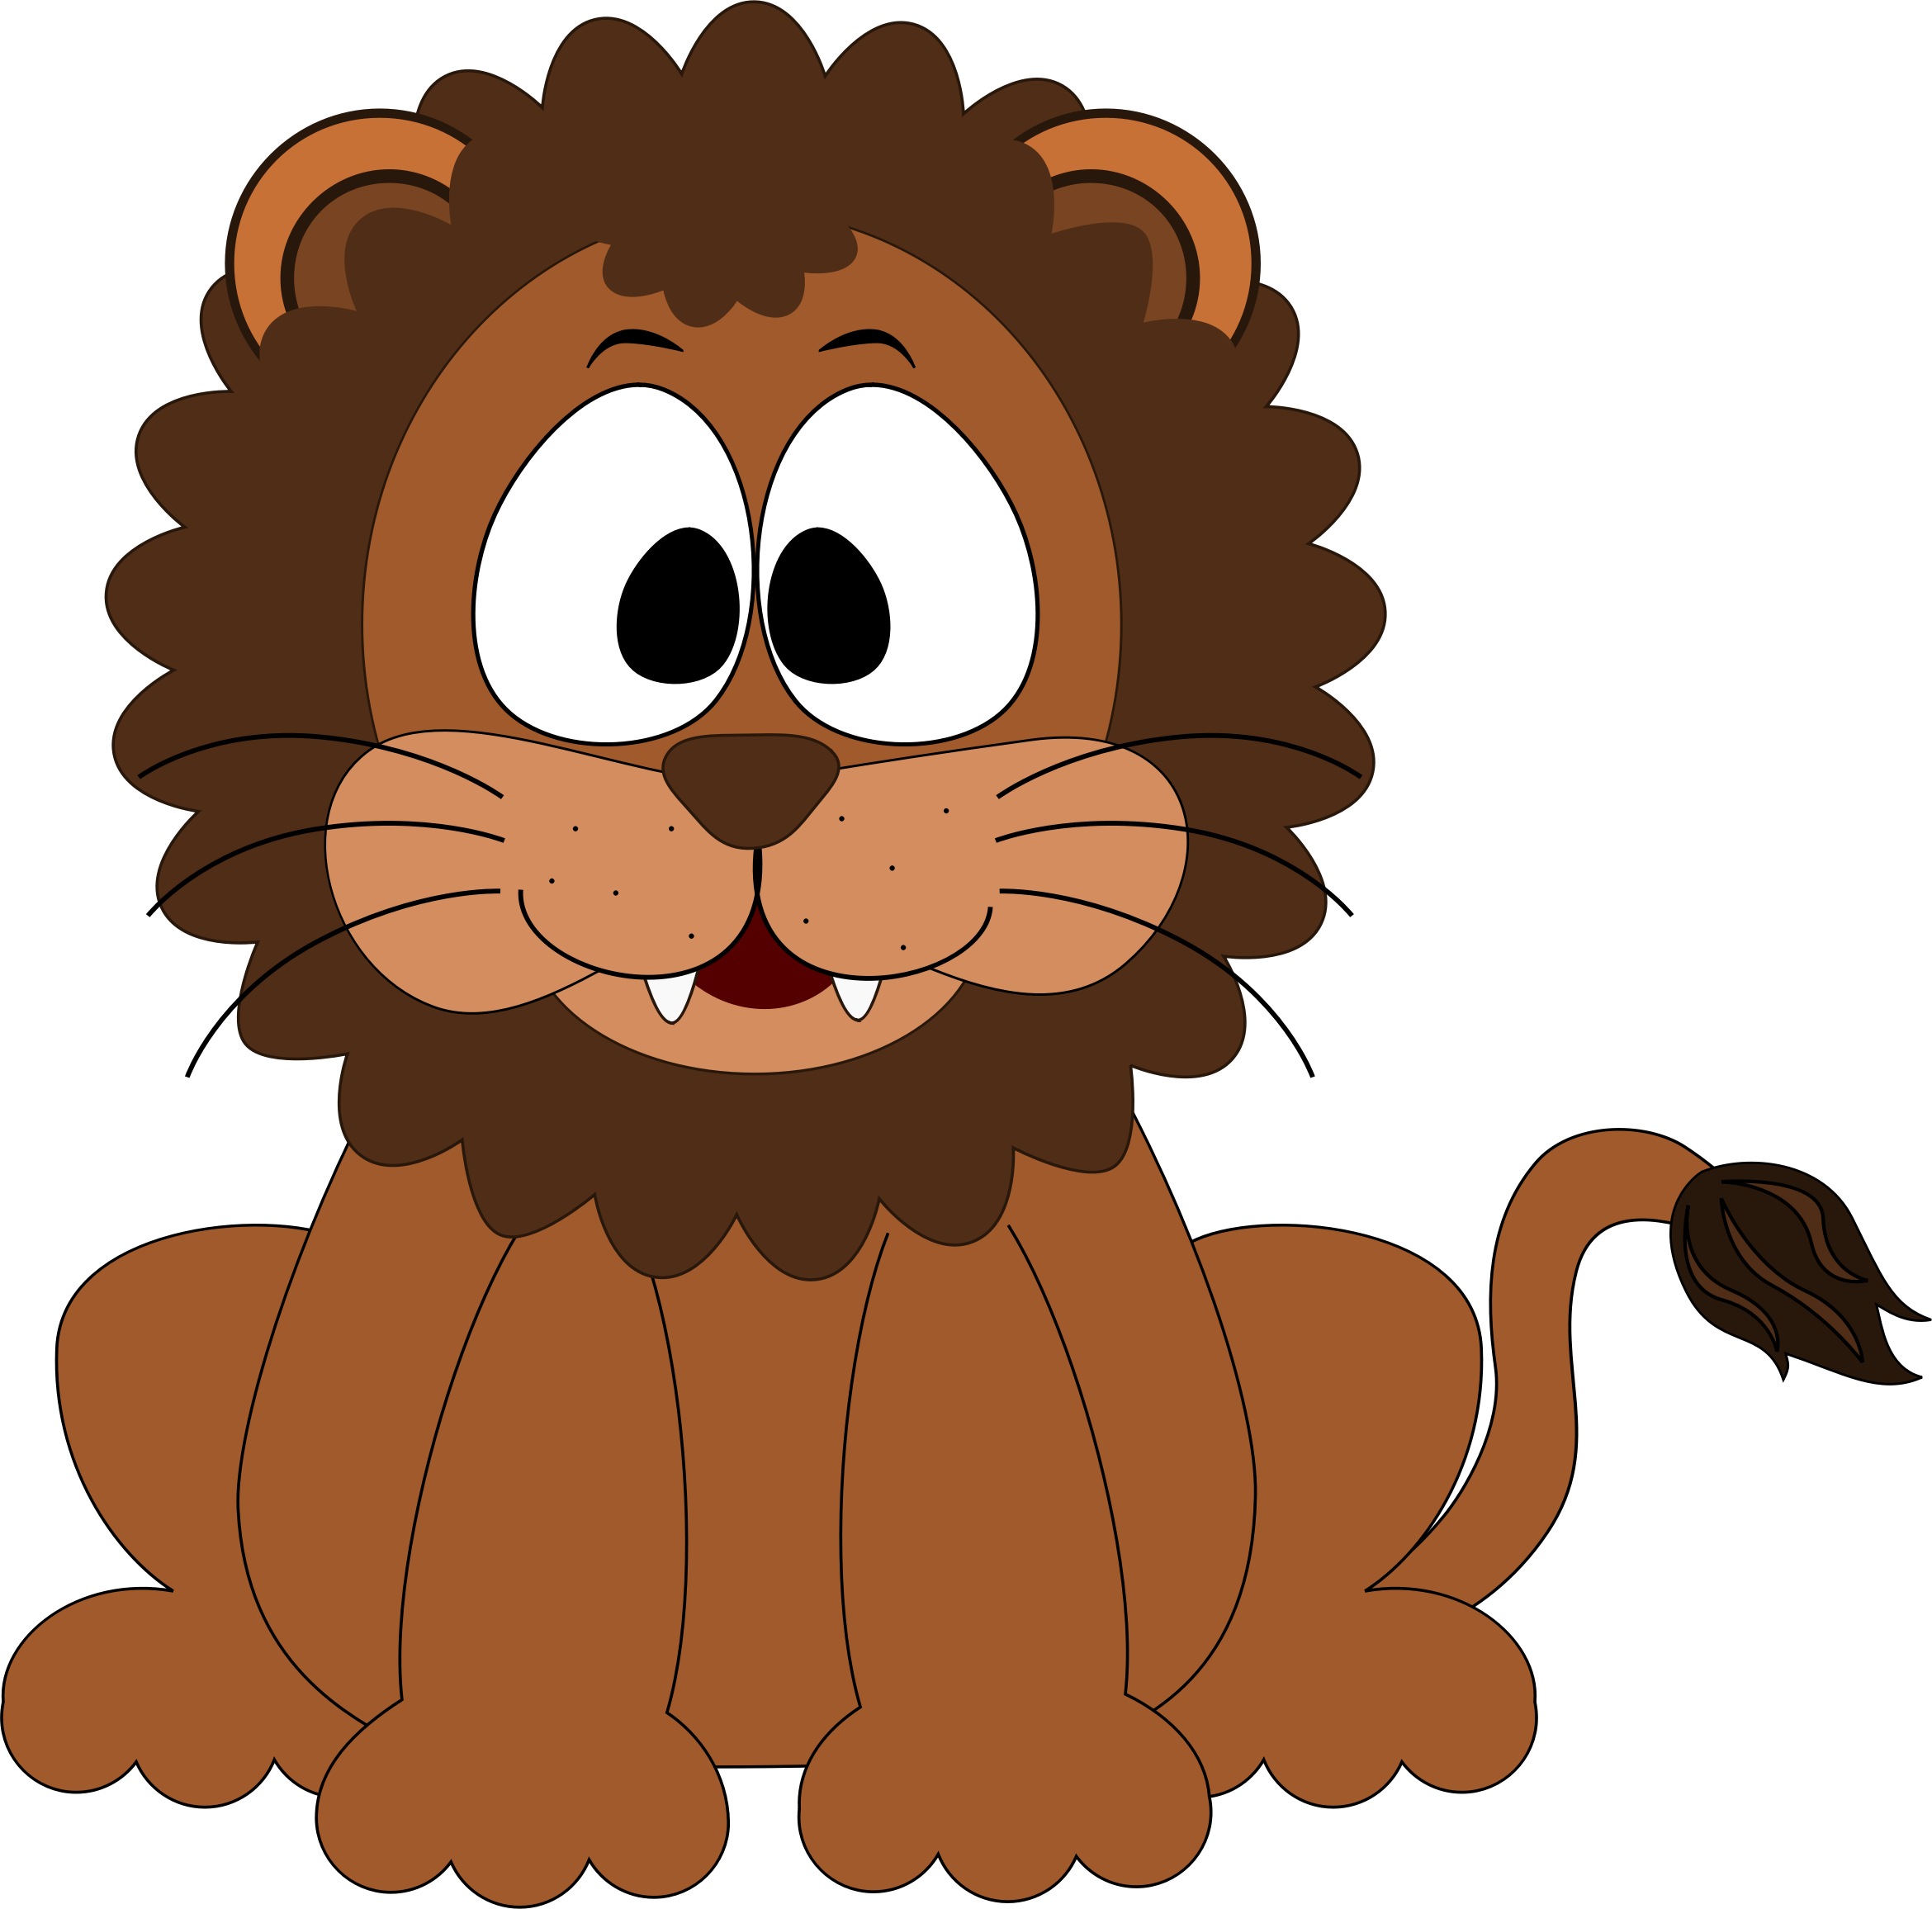 Clipart animals big 5. Cartoon lion image png